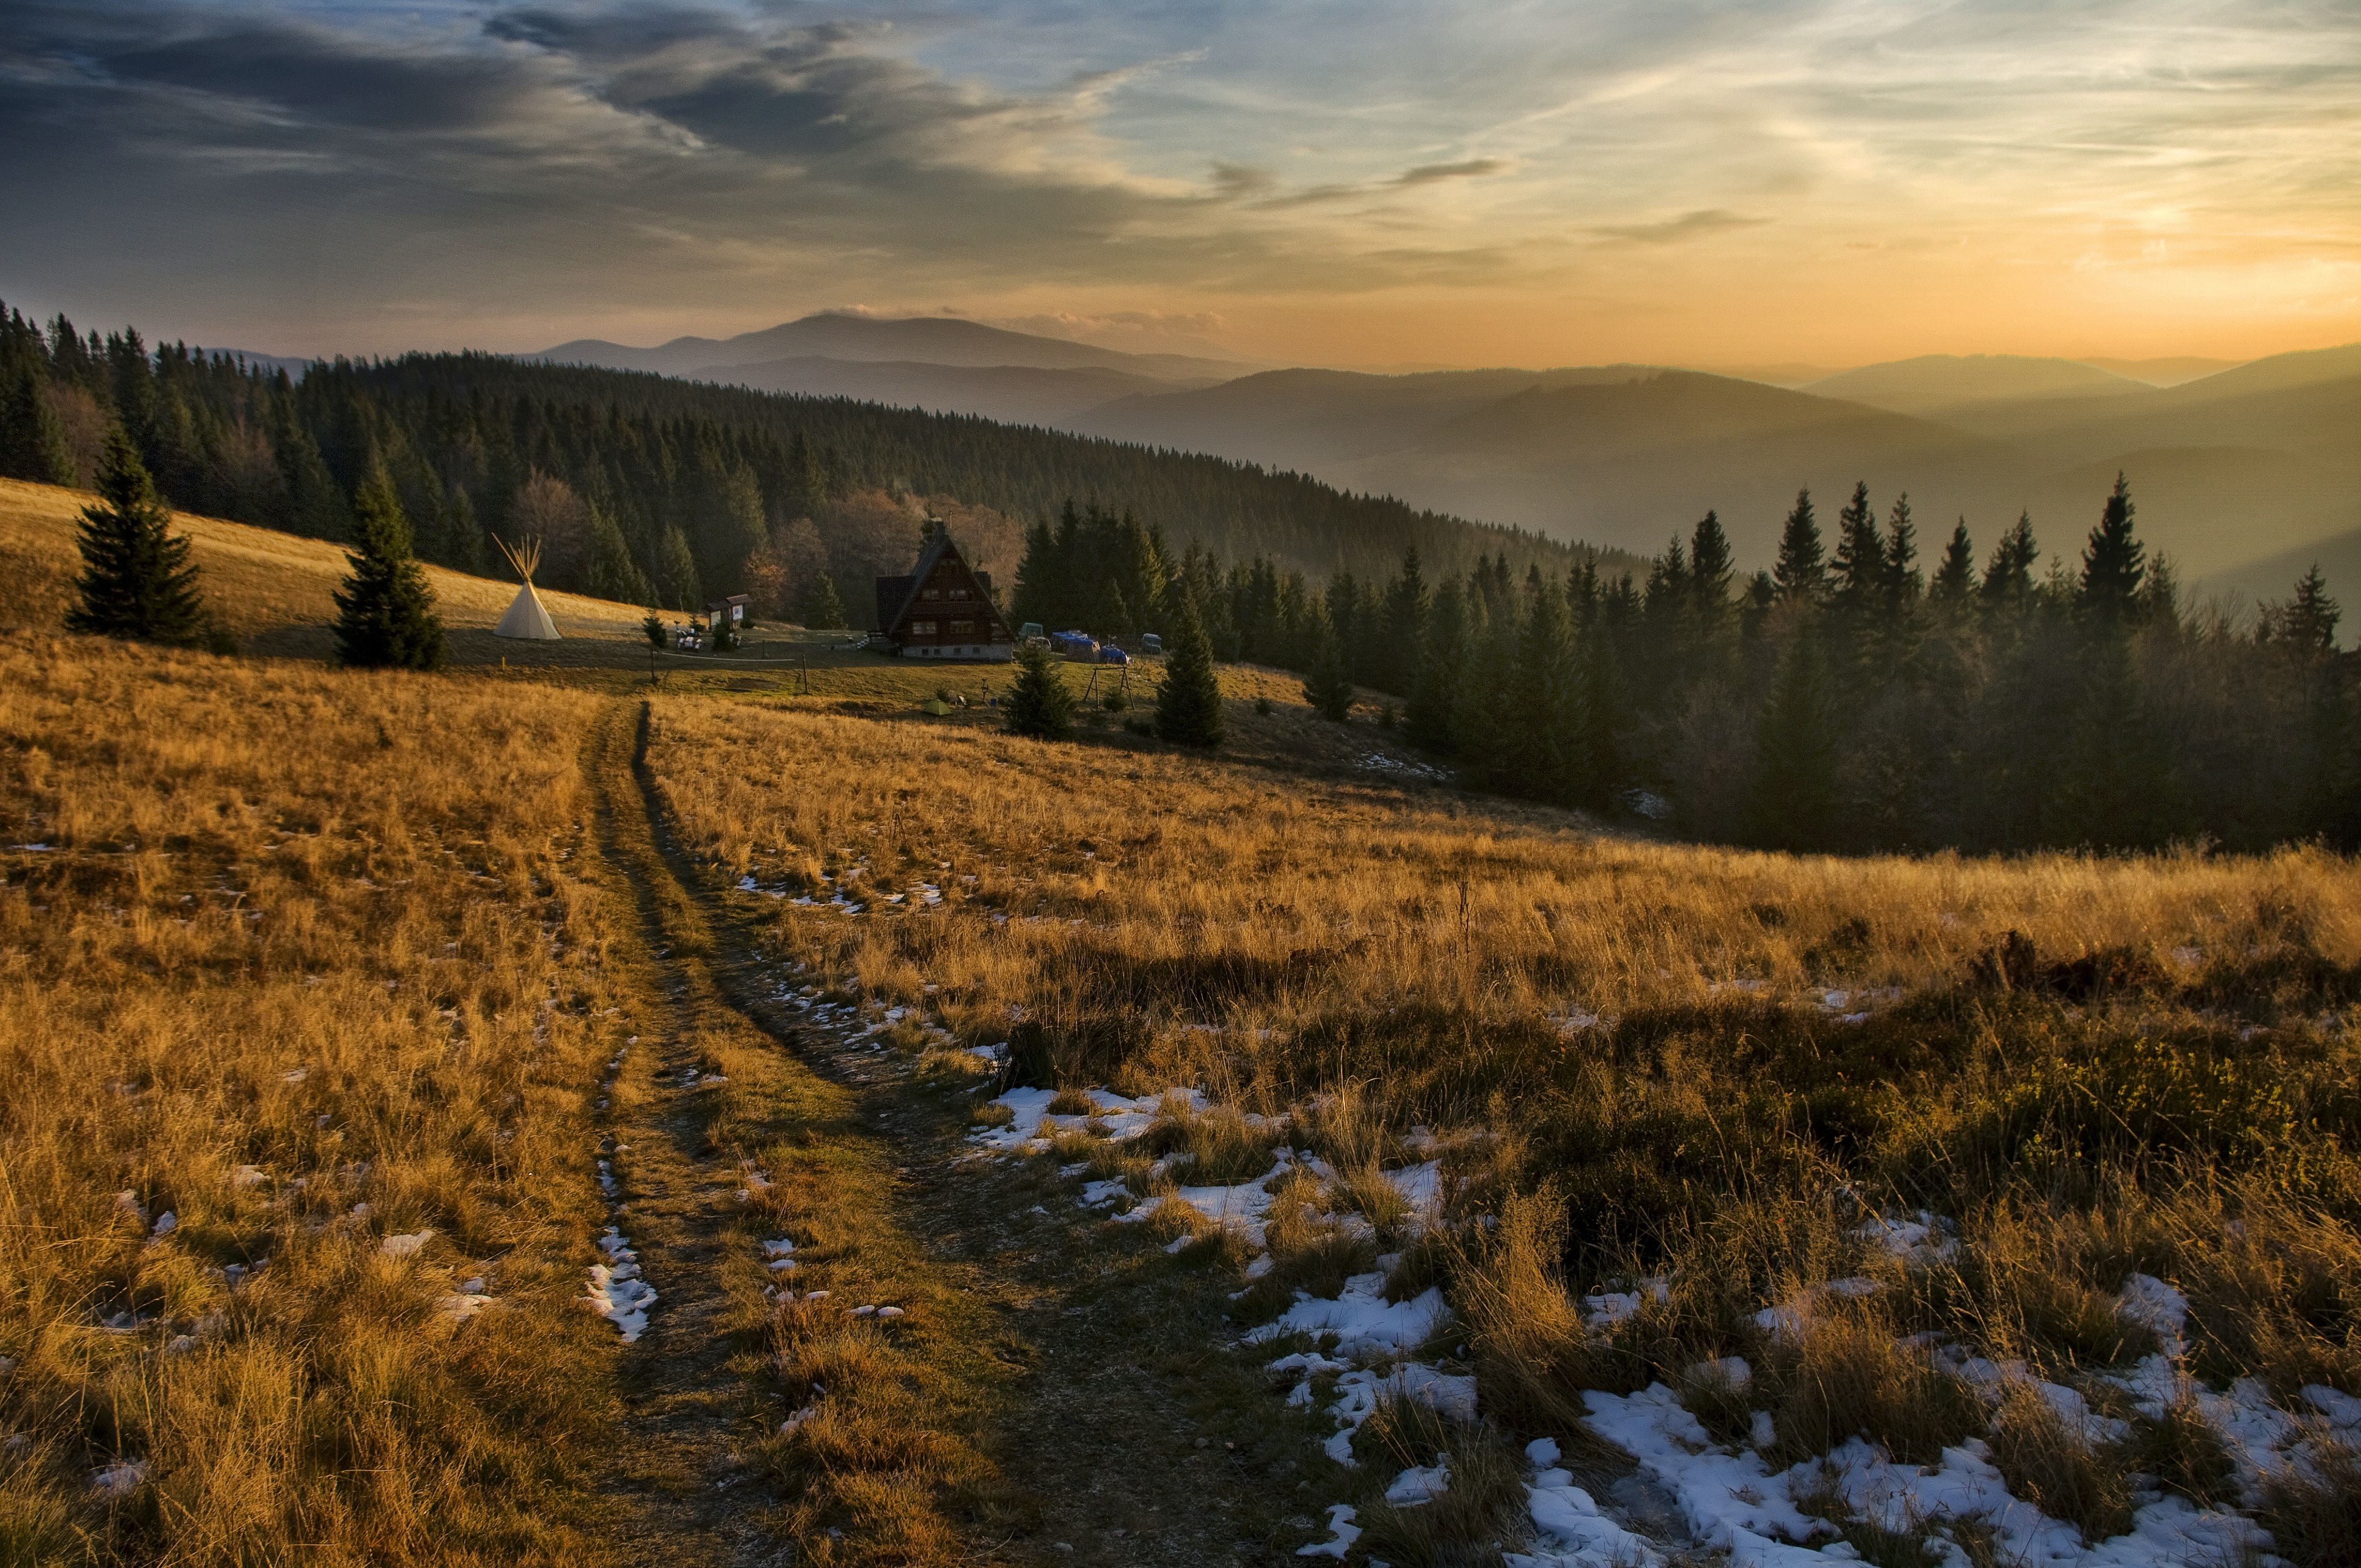 Sunset on a mountain in Bacówka with trees and fields.